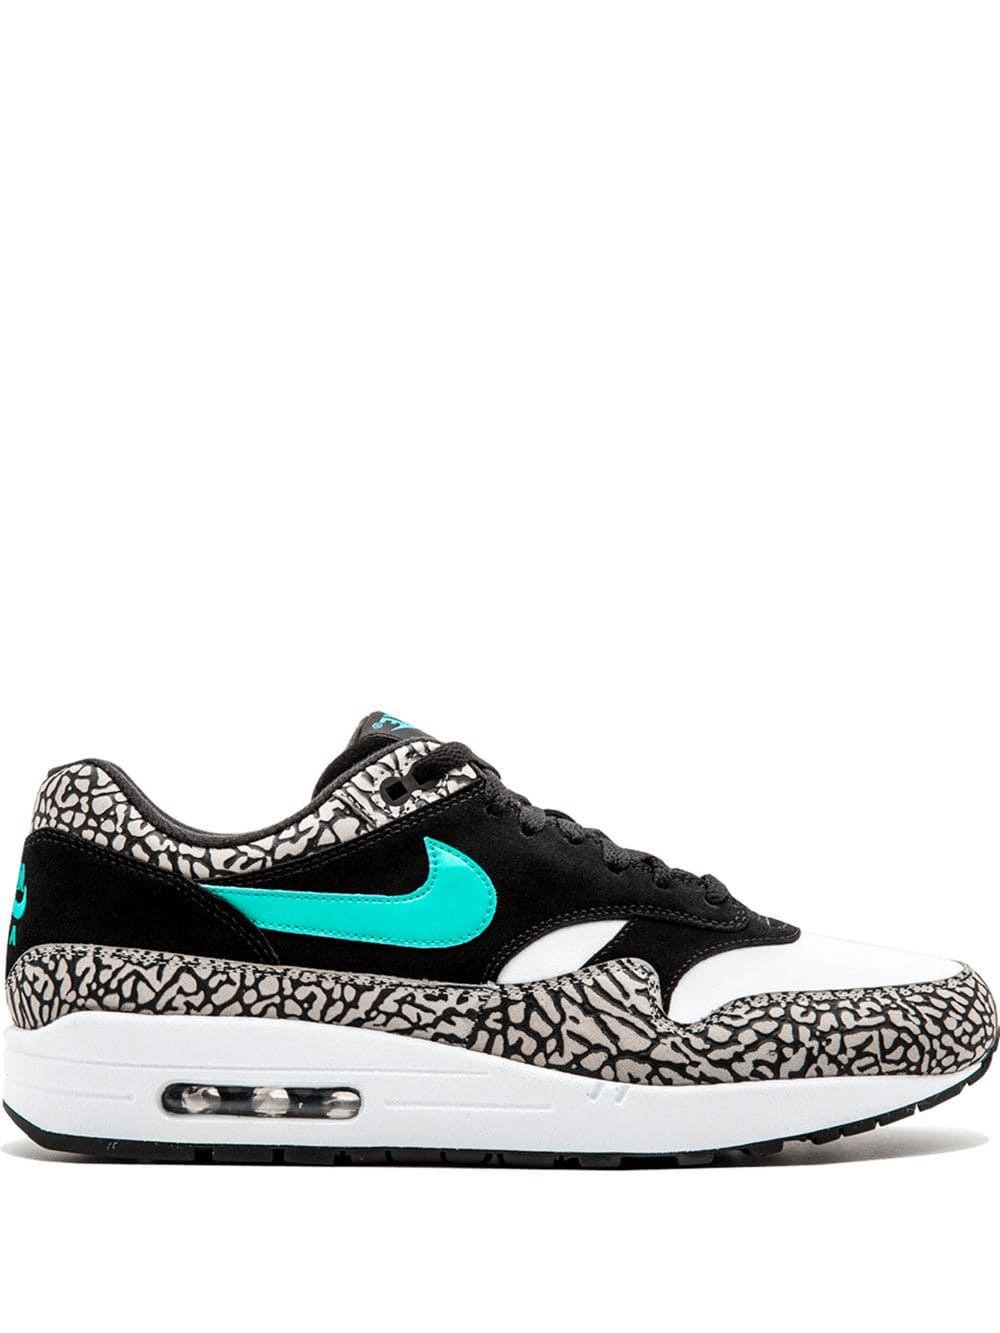 Nike Air Max 1 Premium Retro sneakers - Zwart